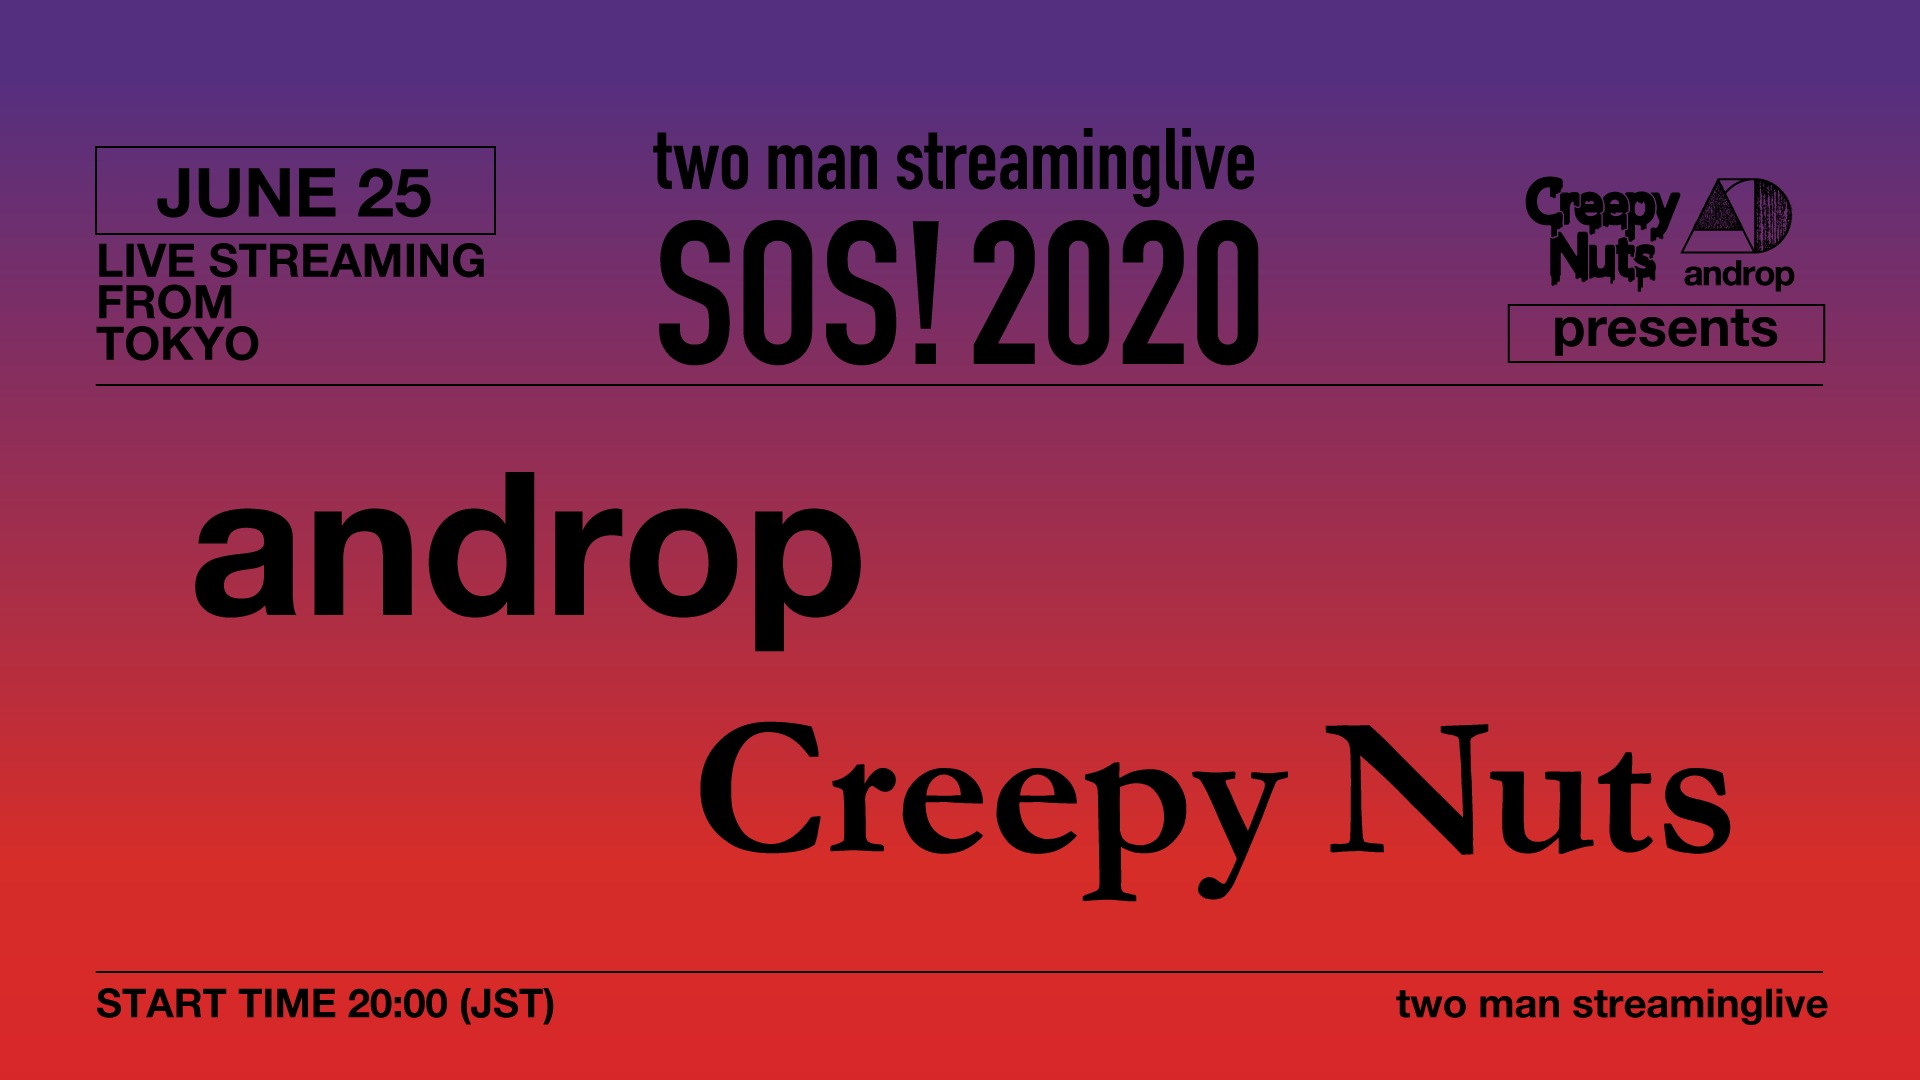 androp×Creepy Nuts